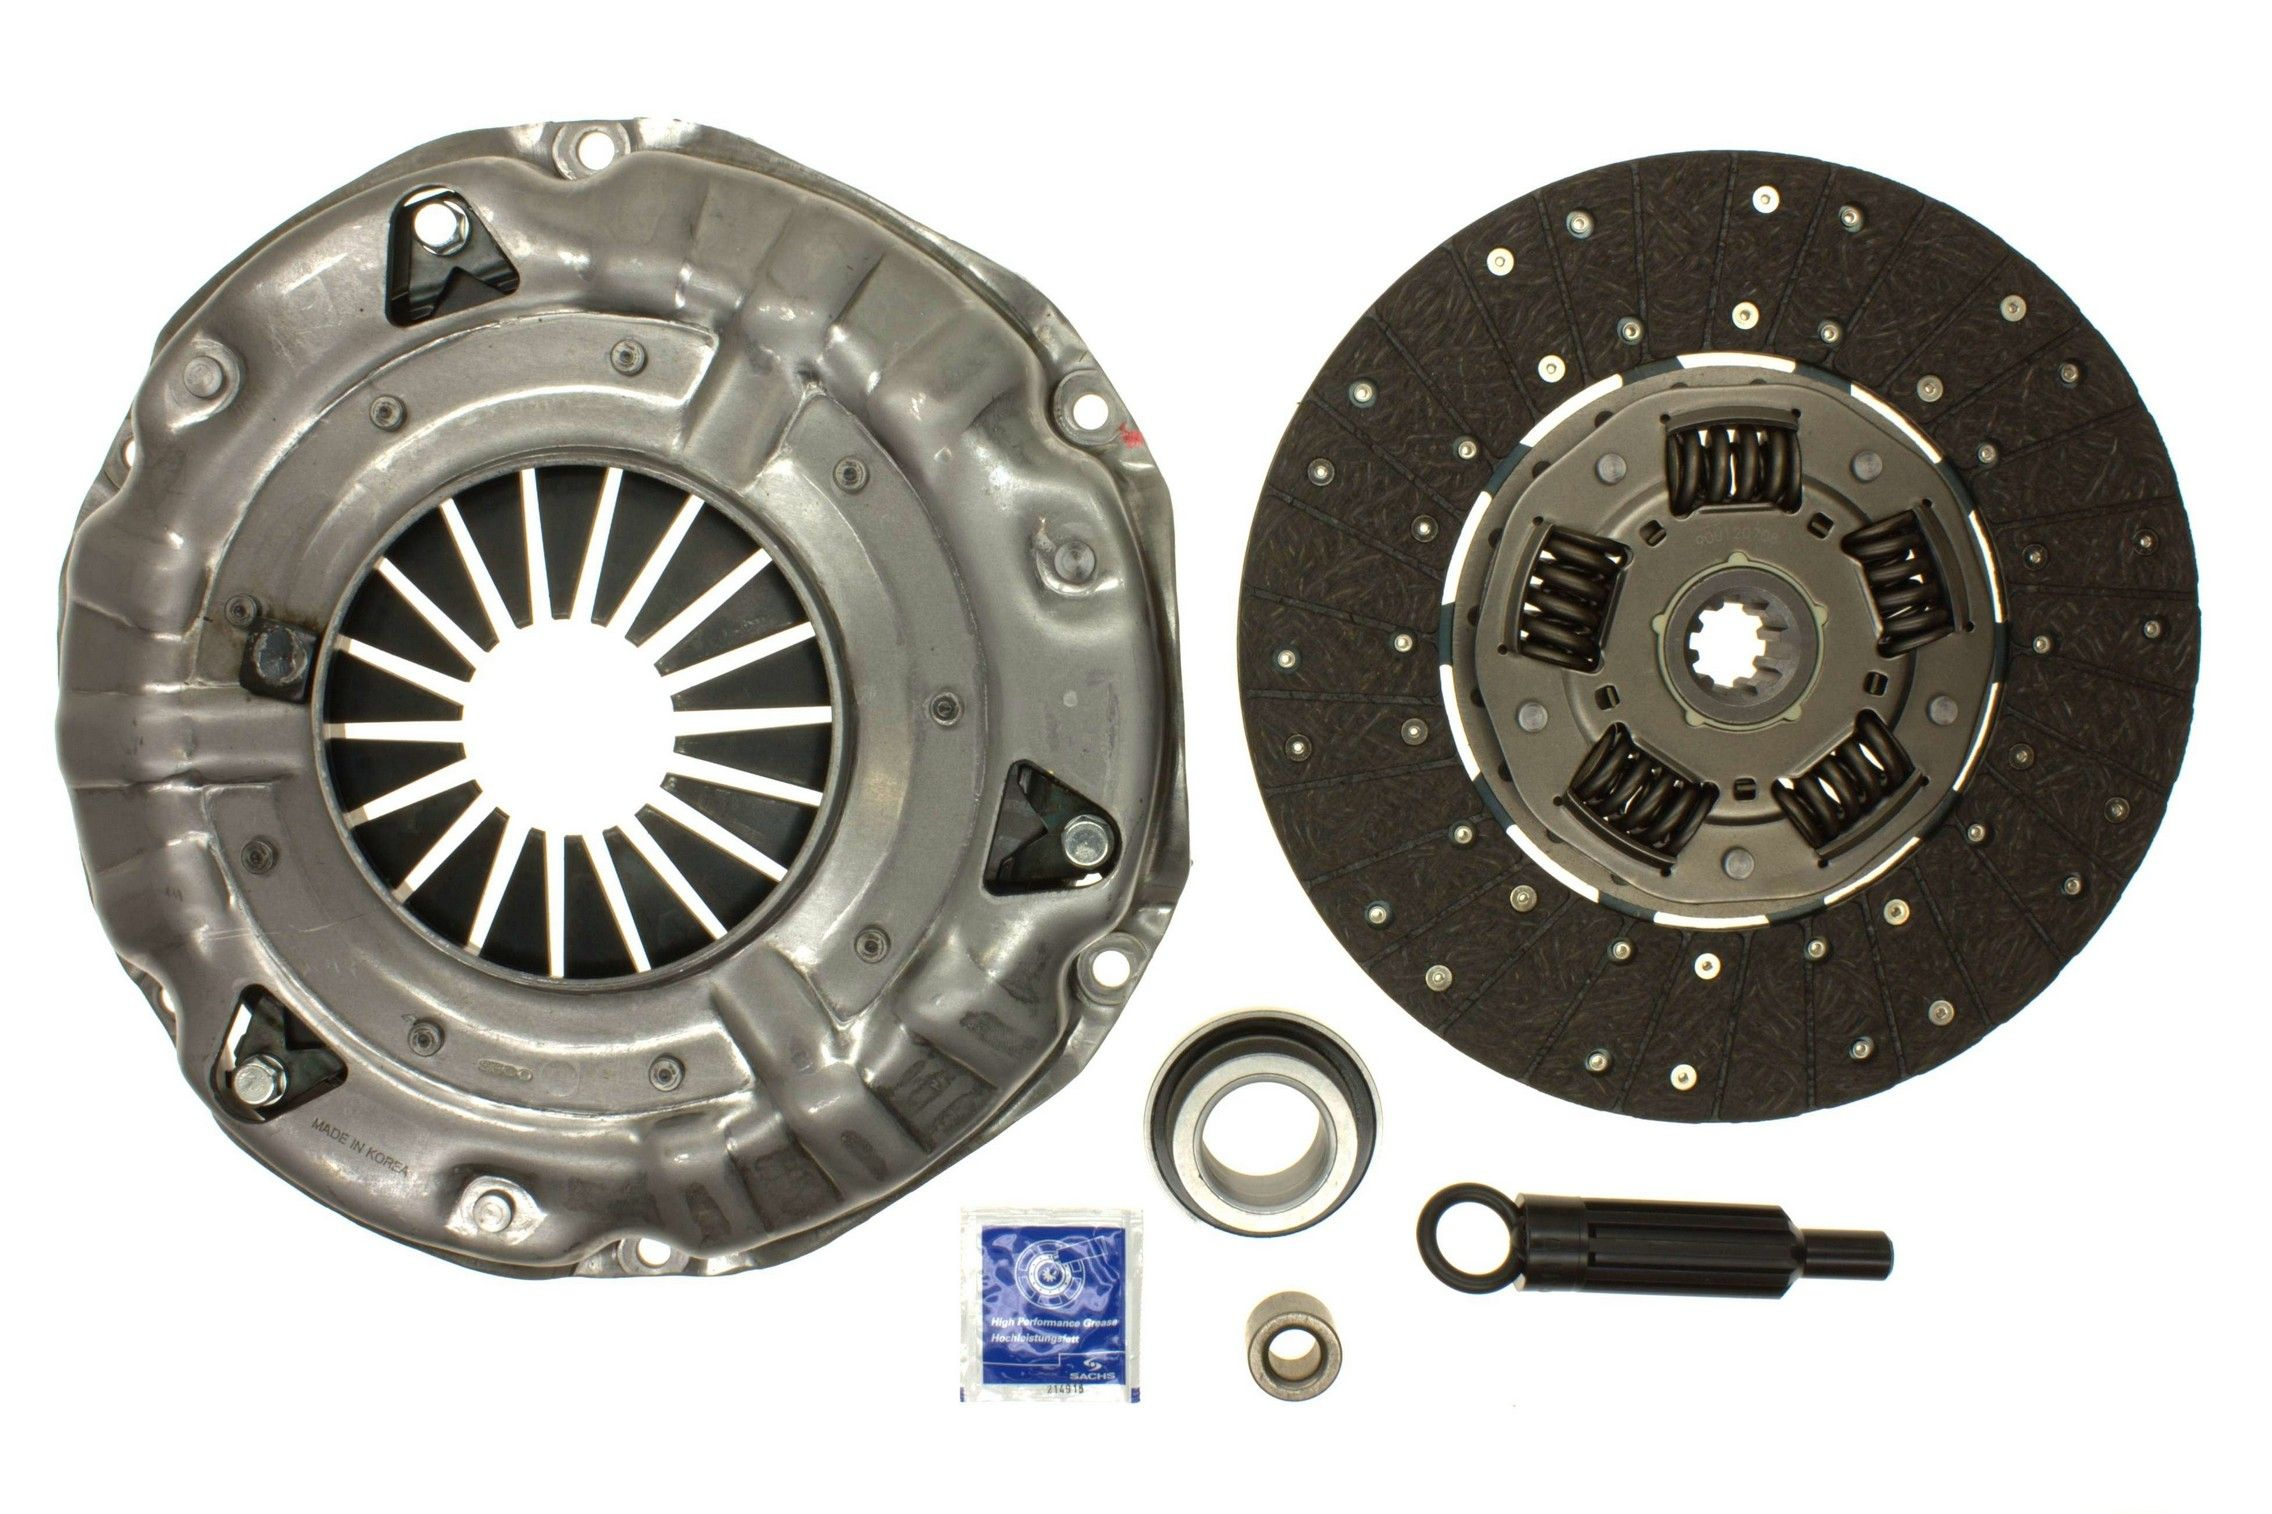 Chevrolet s10 clutch kit replacement exedy luk rhino pac sachs 1991 chevrolet s10 clutch kit na 6 cyl 43l sachs k1877 09 standard od 11 id 1 18 teeth 10t publicscrutiny Gallery